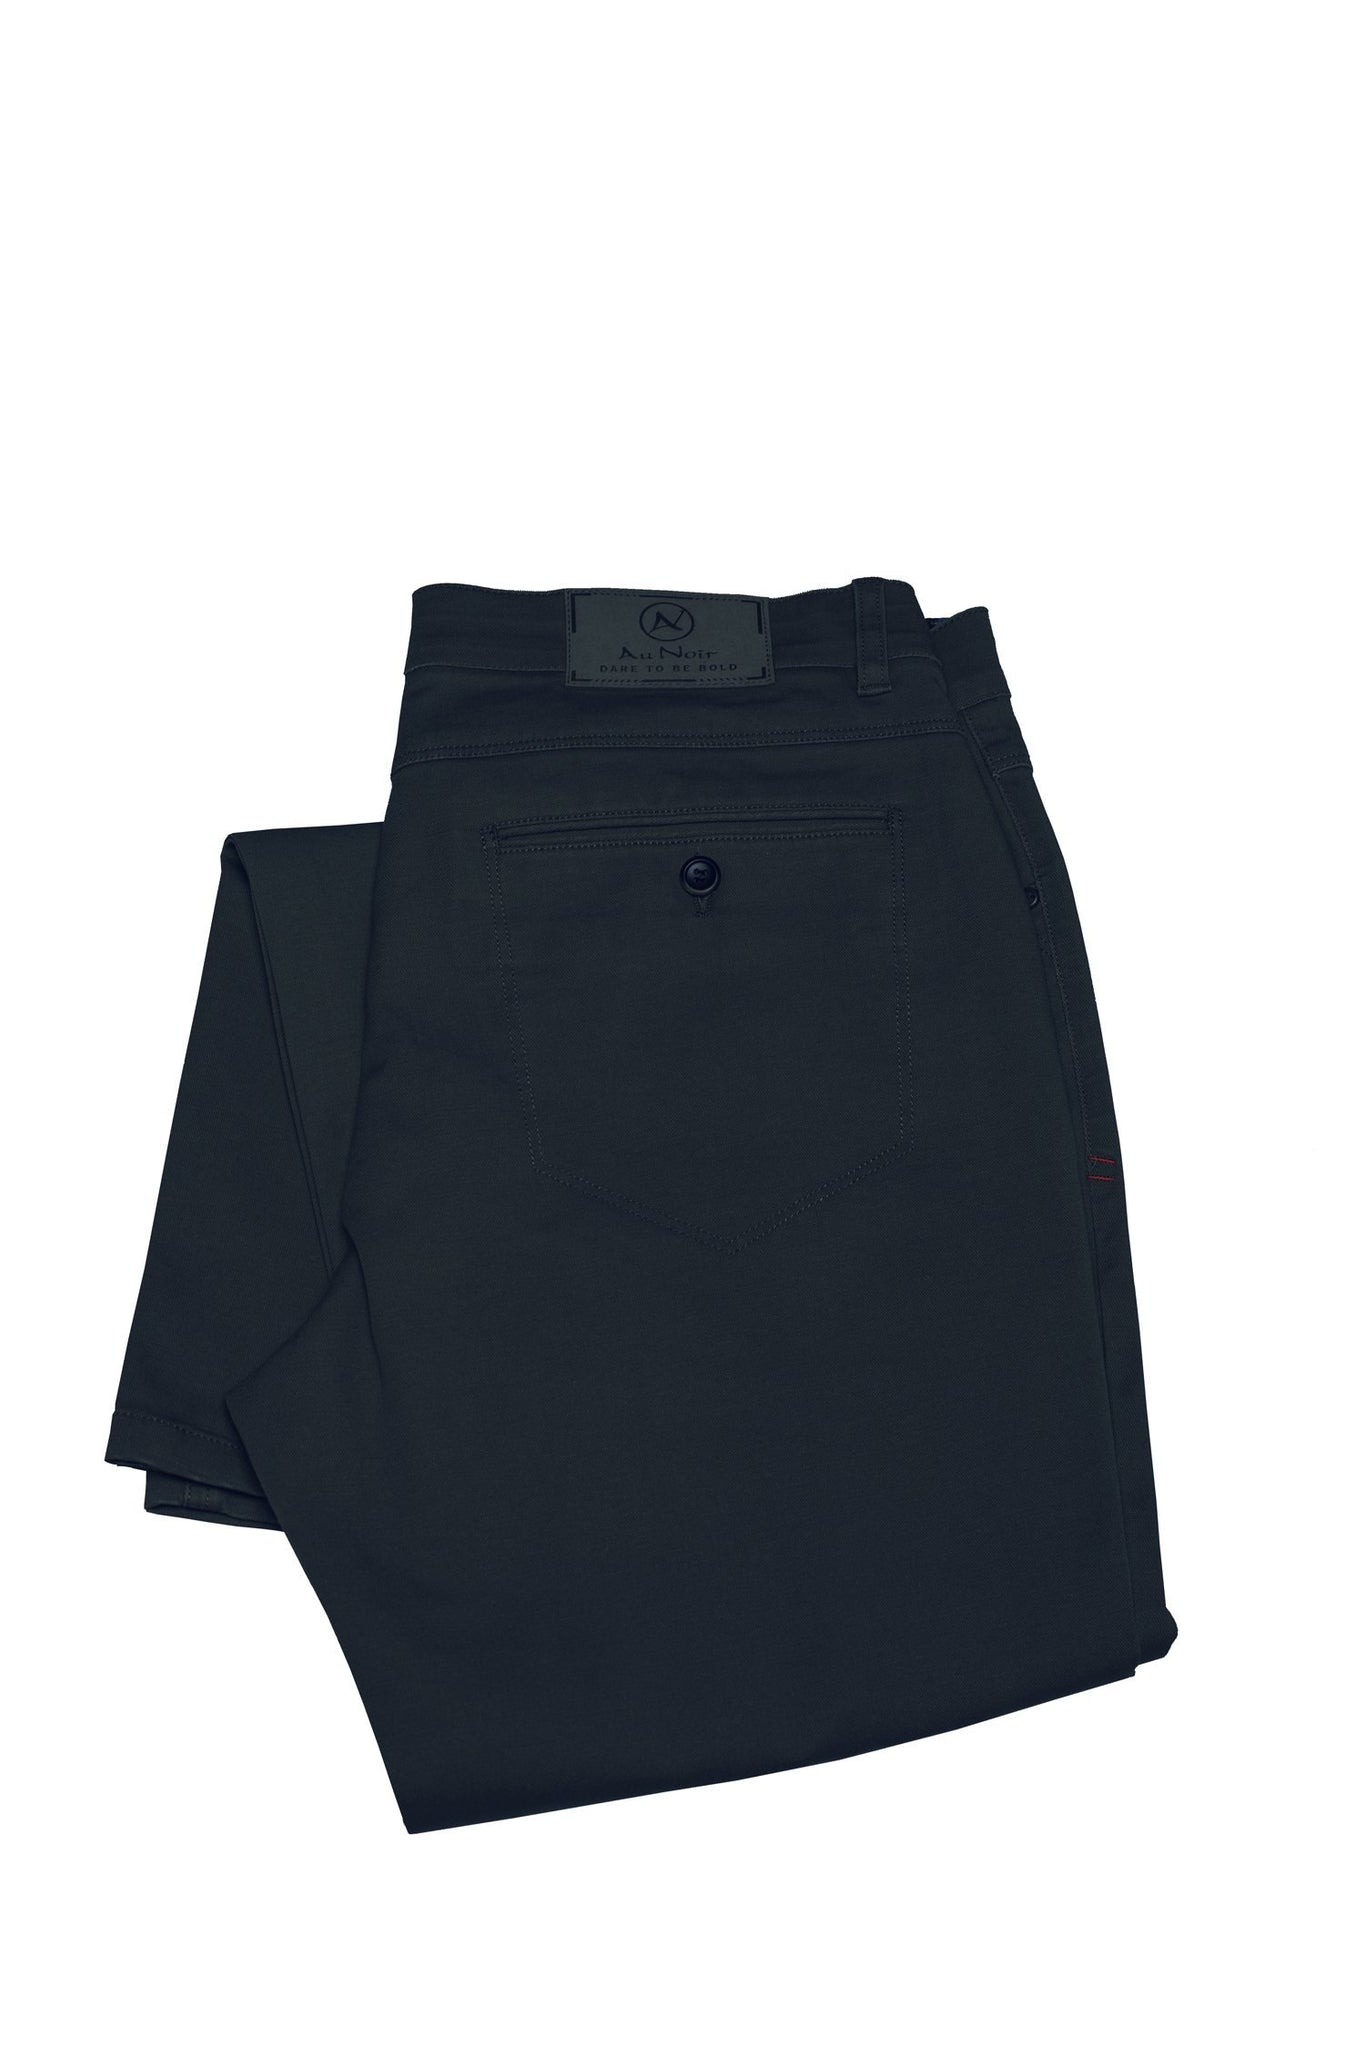 Au Noir Dressy Stretch Pant - Remington Petrol